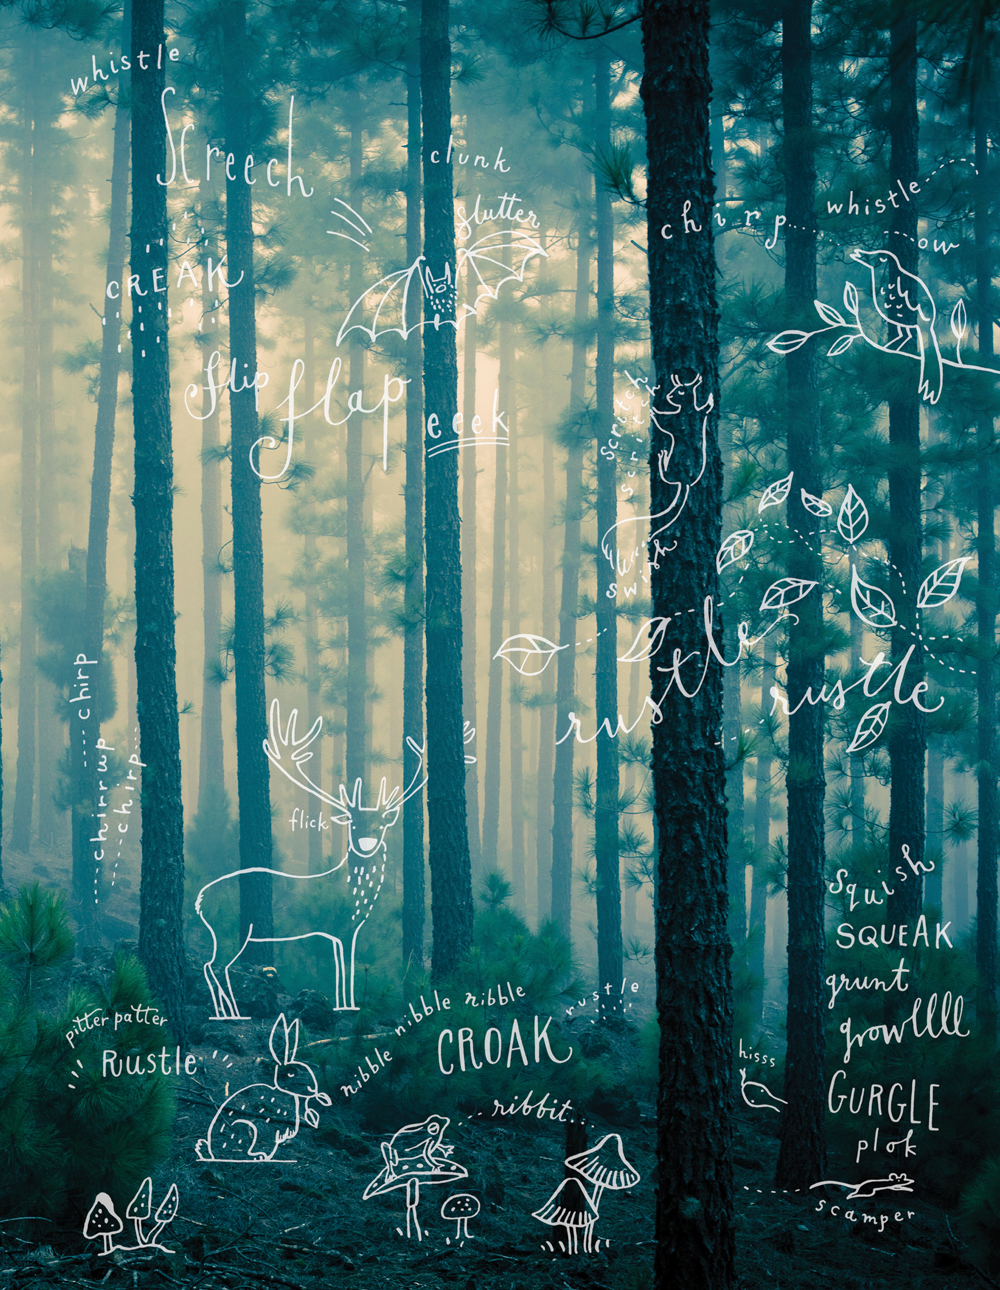 illustration of forest with text overtop